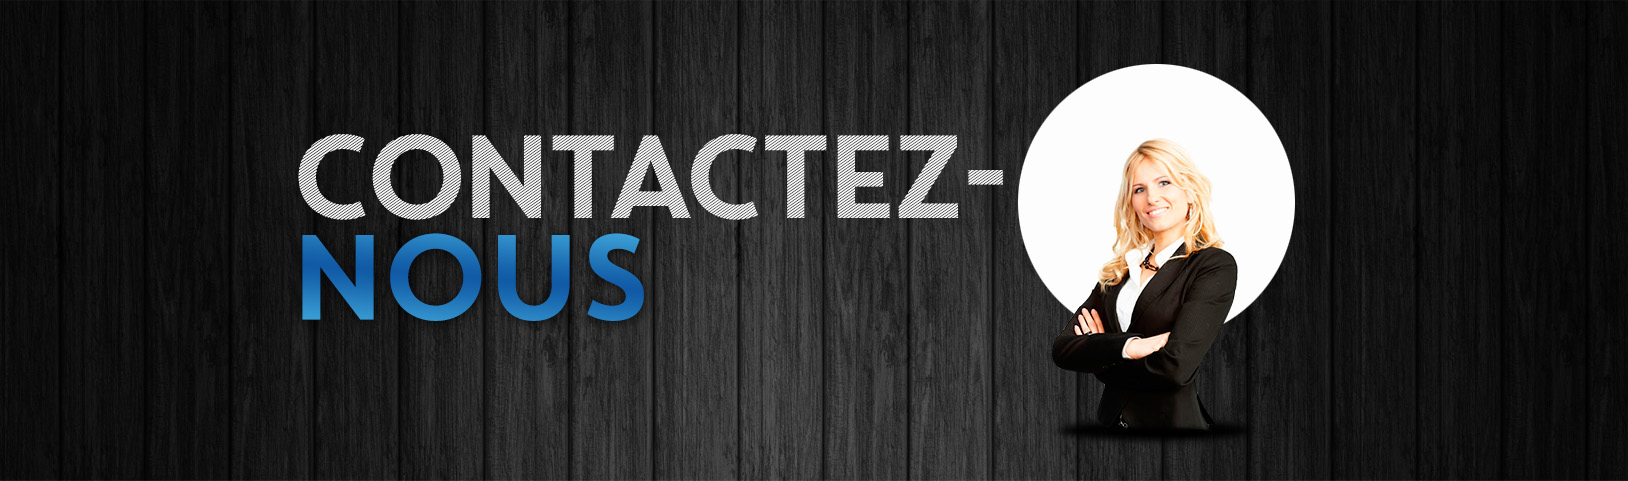 contact-banner-fr